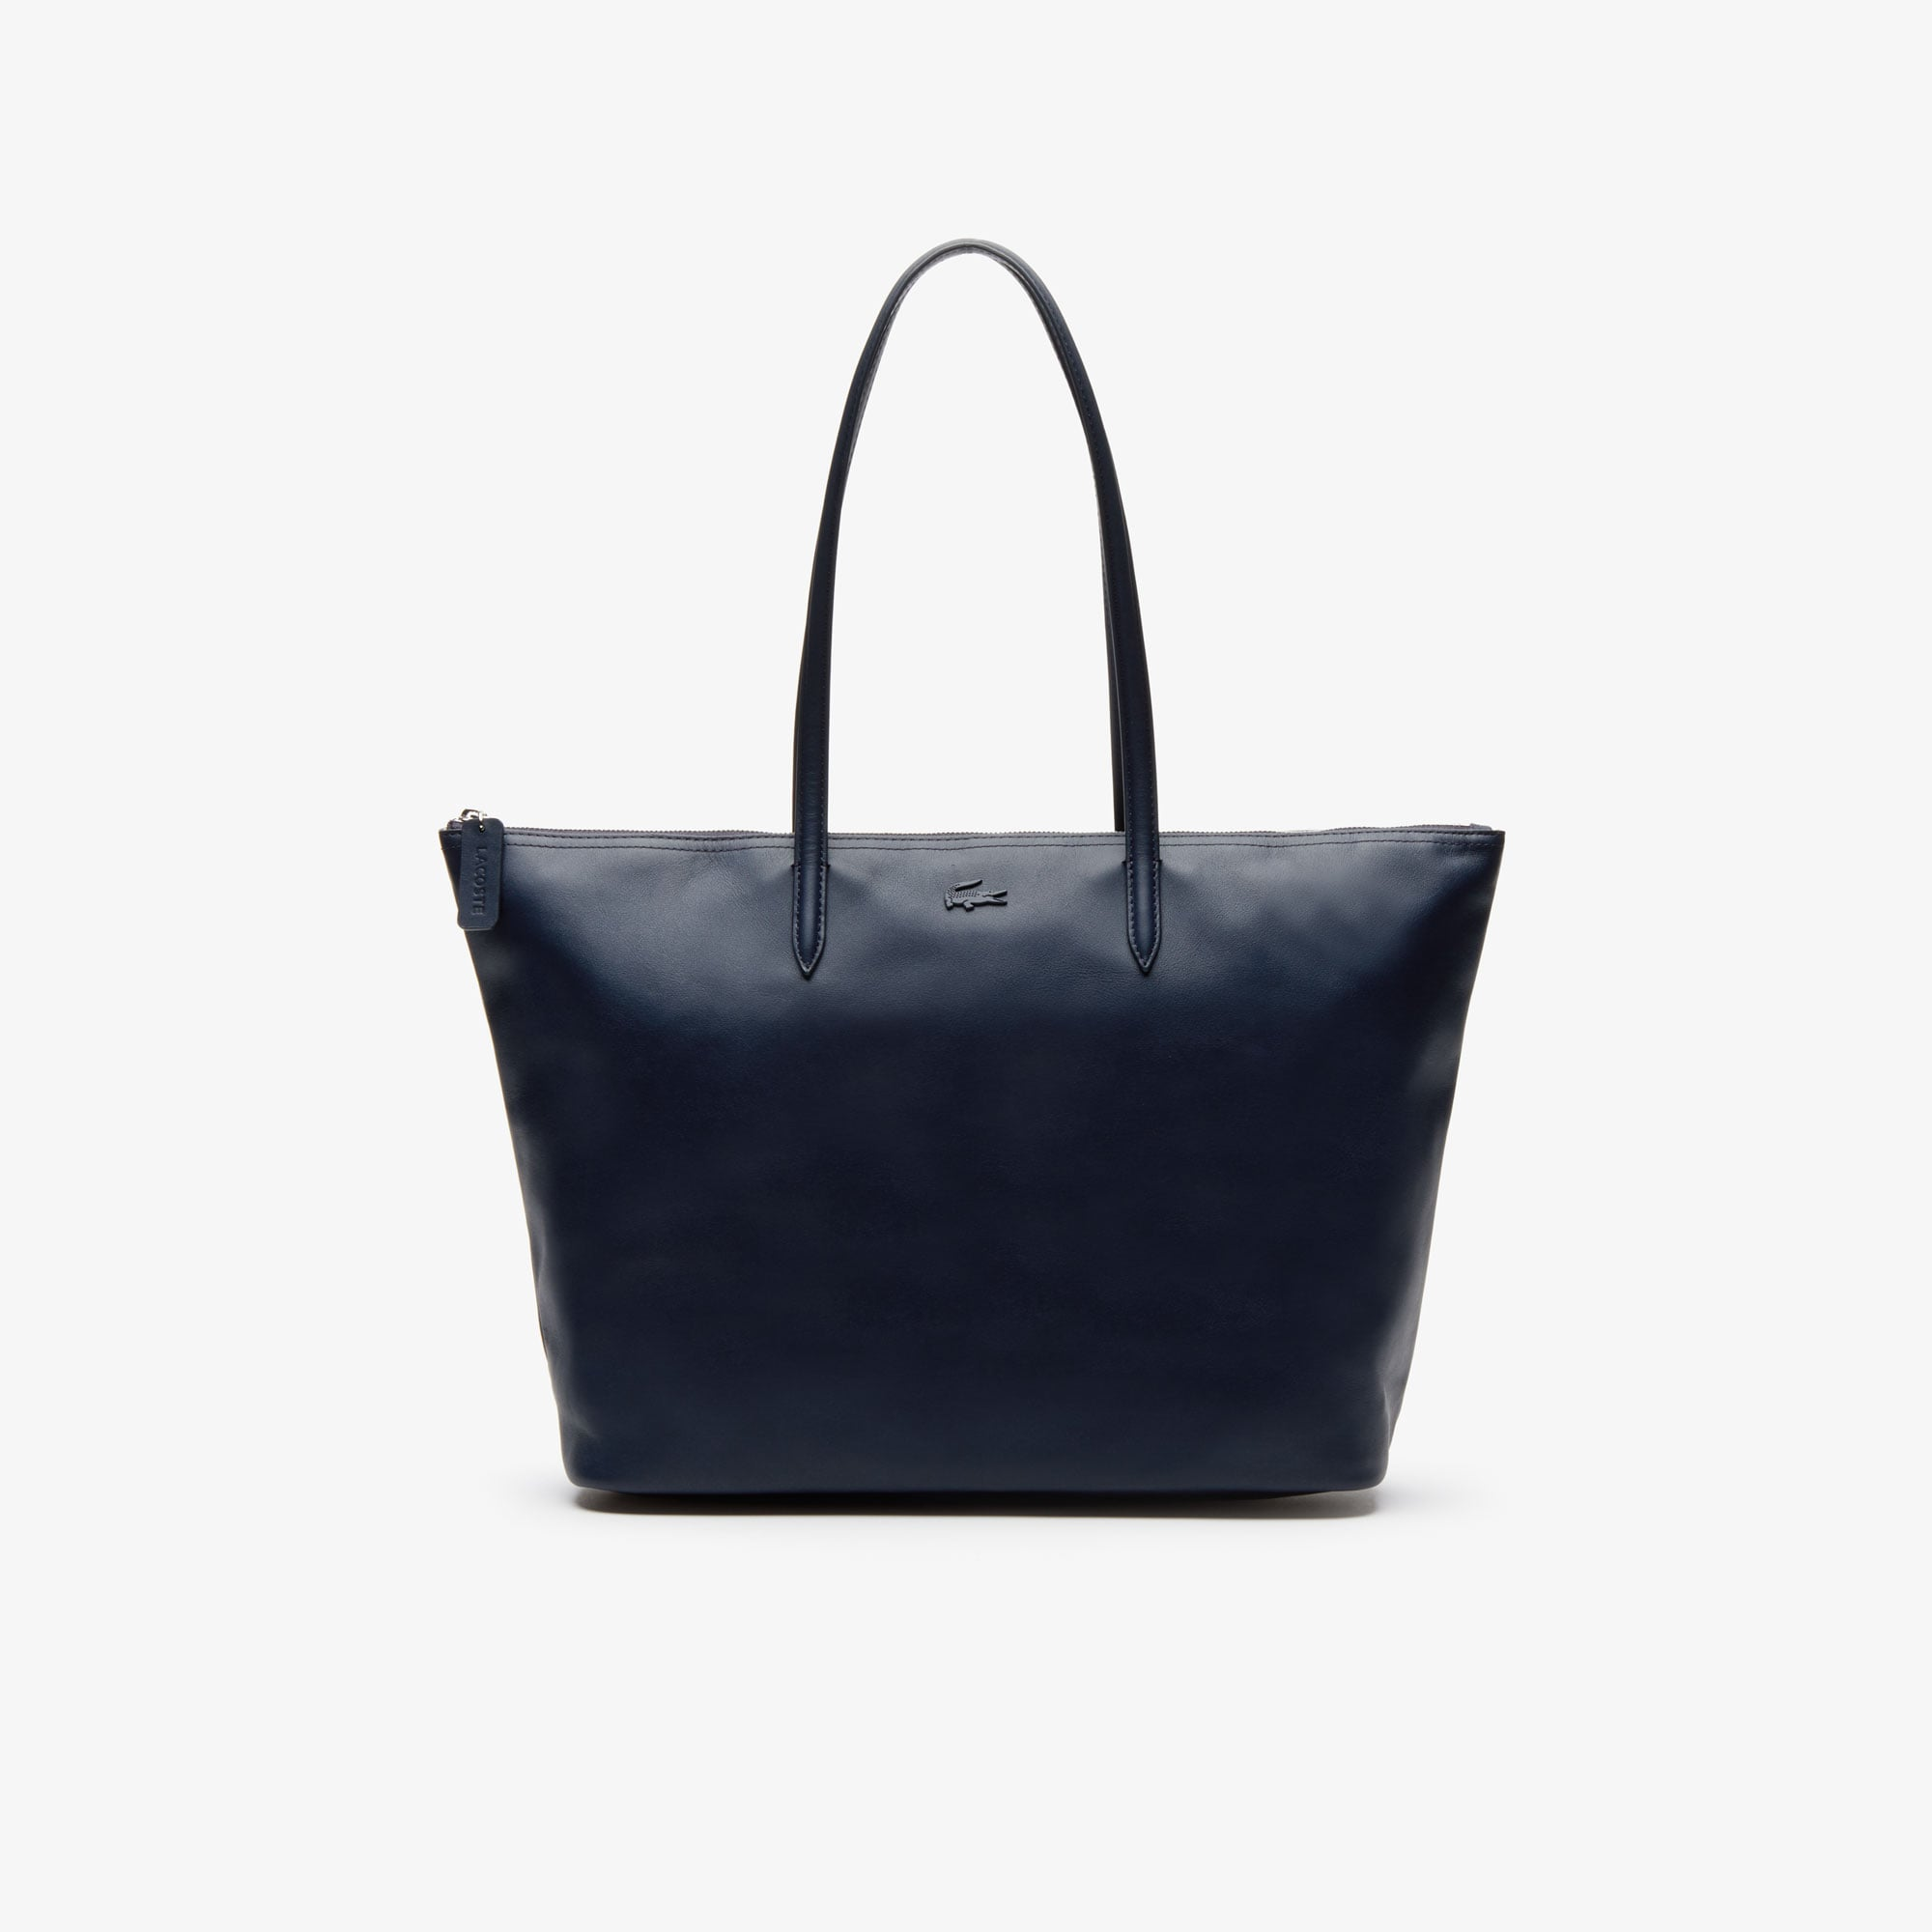 24ff970a9f Bags & Handbags Collection | Women's Leather Goods | LACOSTE